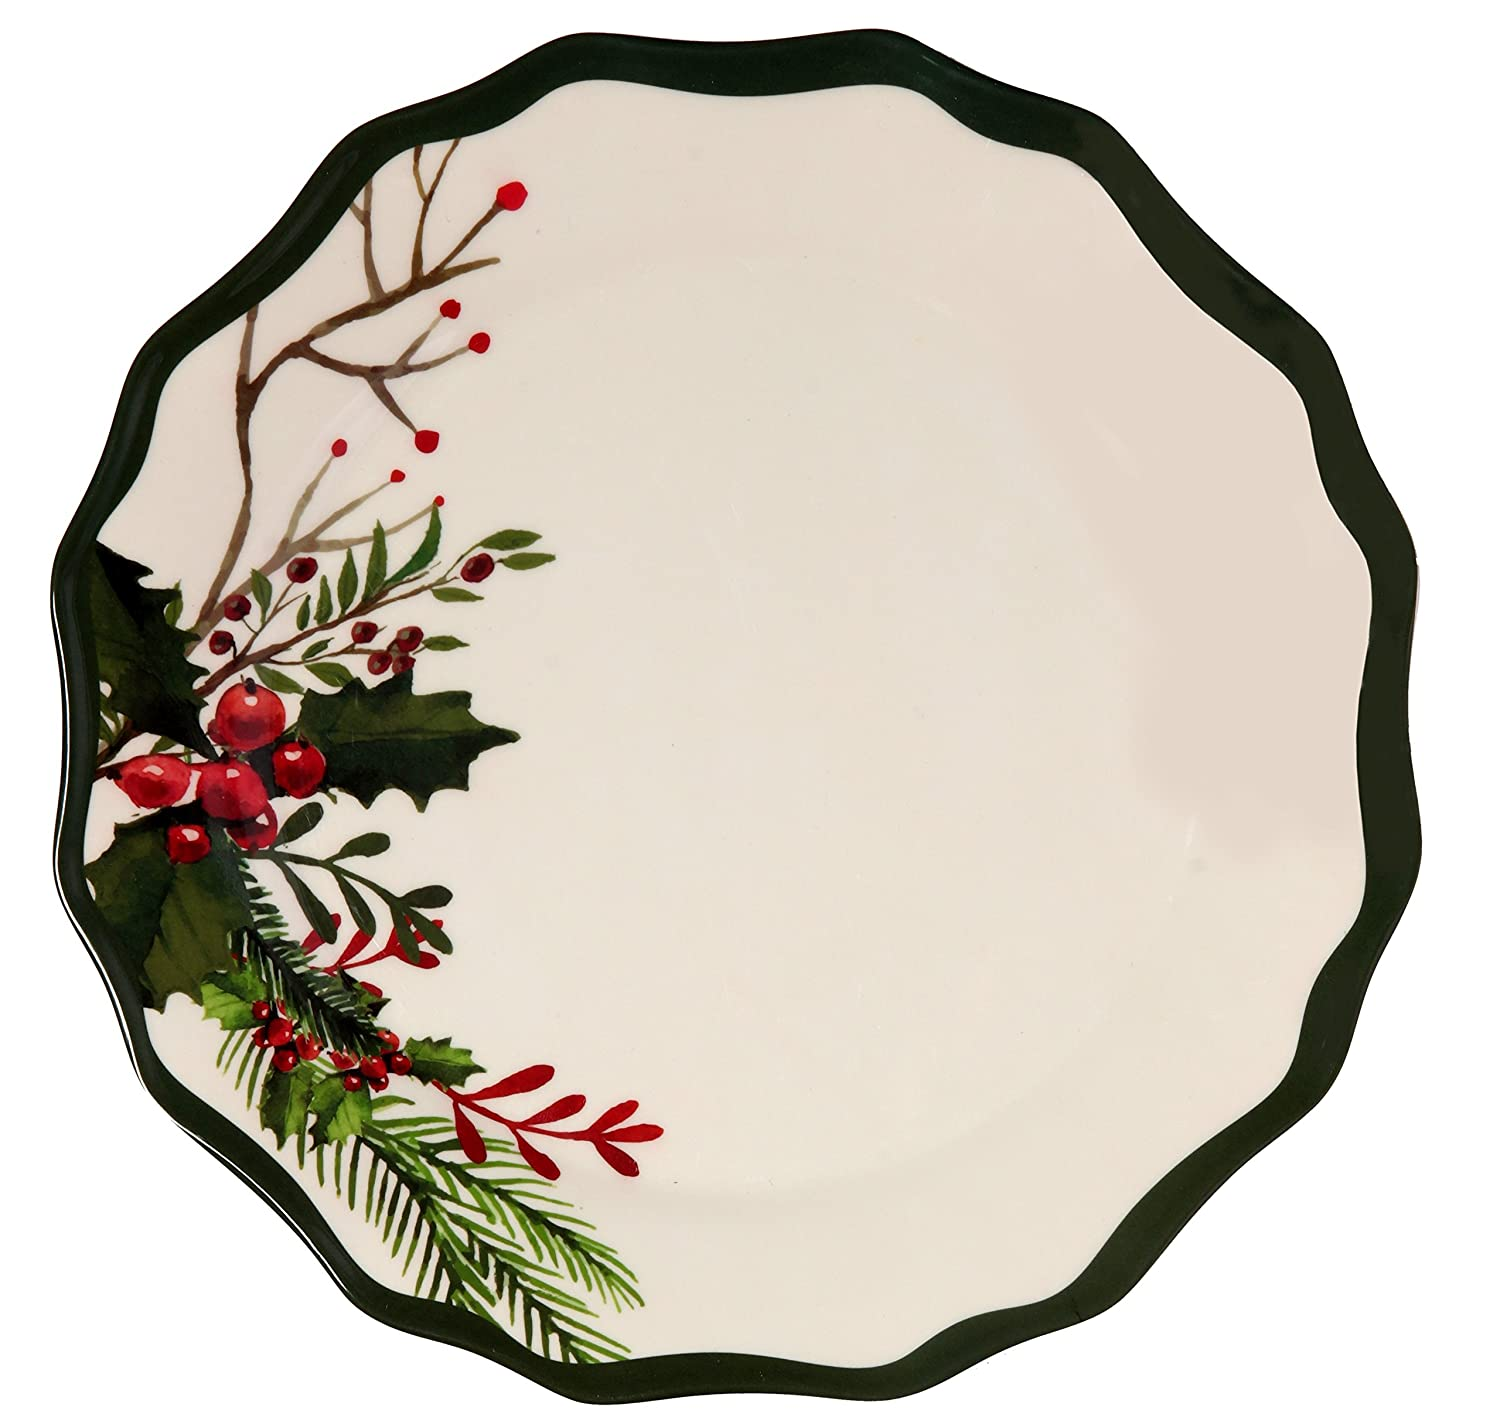 Melange 6-Piece 100% Melamine Salad Plate Set (Winter Bouquet Collection ) | Shatter-Proof and Chip-Resistant Melamine Salad Plates Ruby Compass Melamine 612409791849